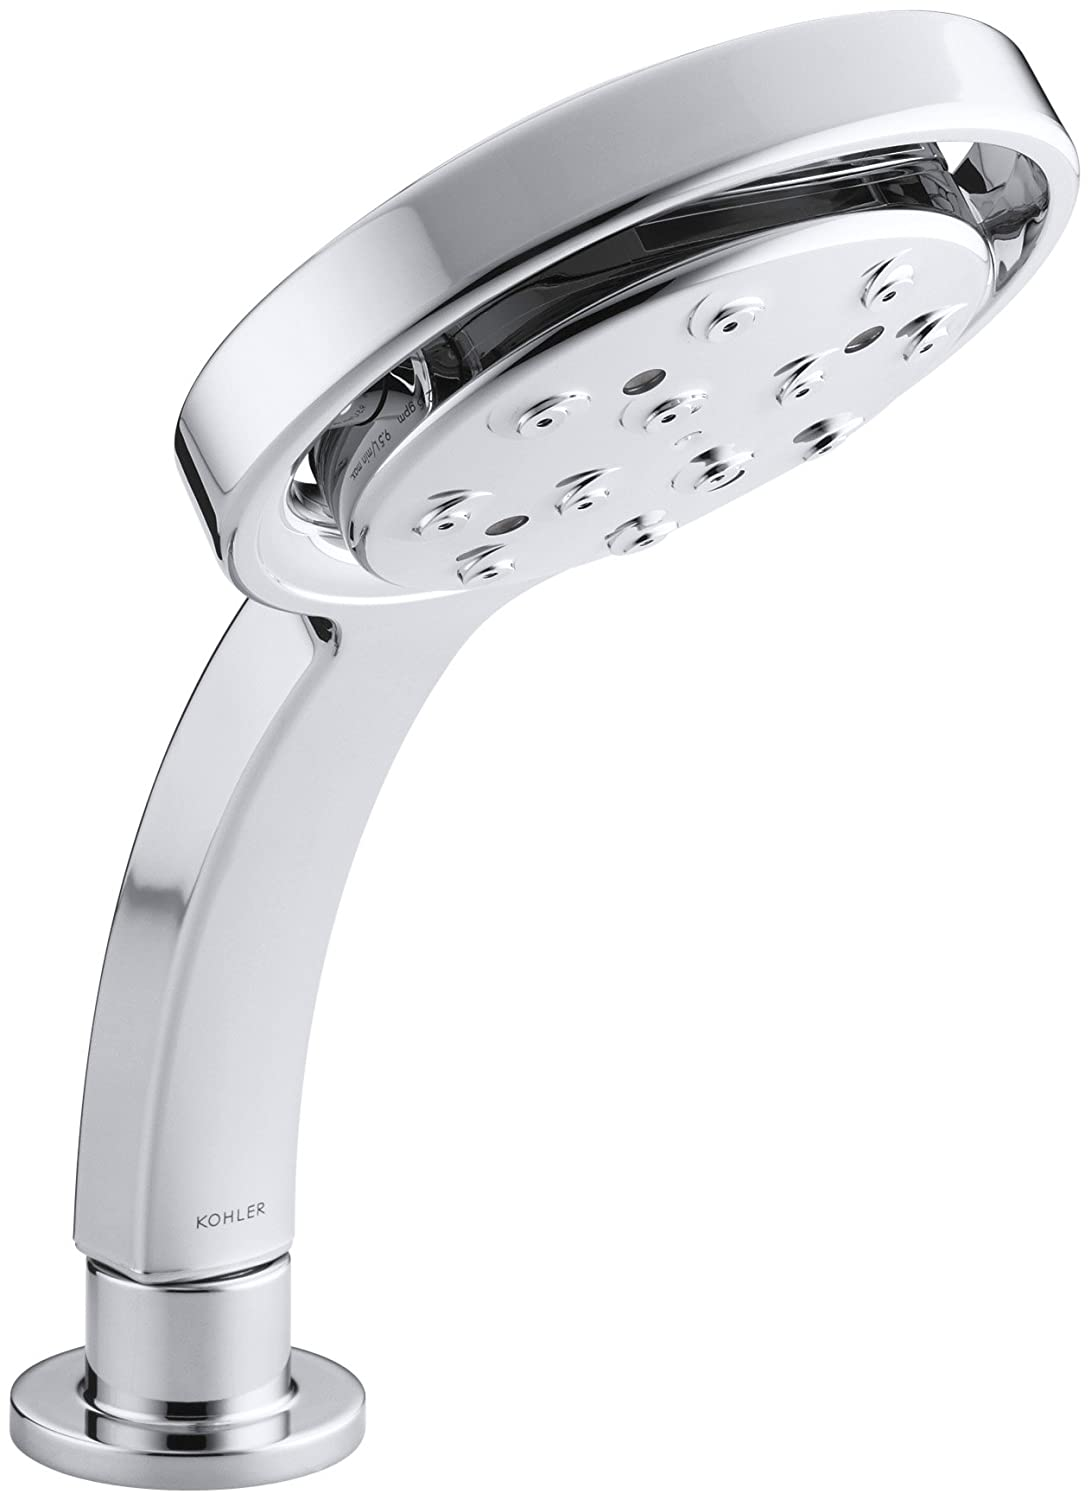 Polished Chrome 2.0 GPM Kohler K45426CP Flipside 02 2.0-Gallon Per Minute Multifunctional Hand shower, Polished Chrome